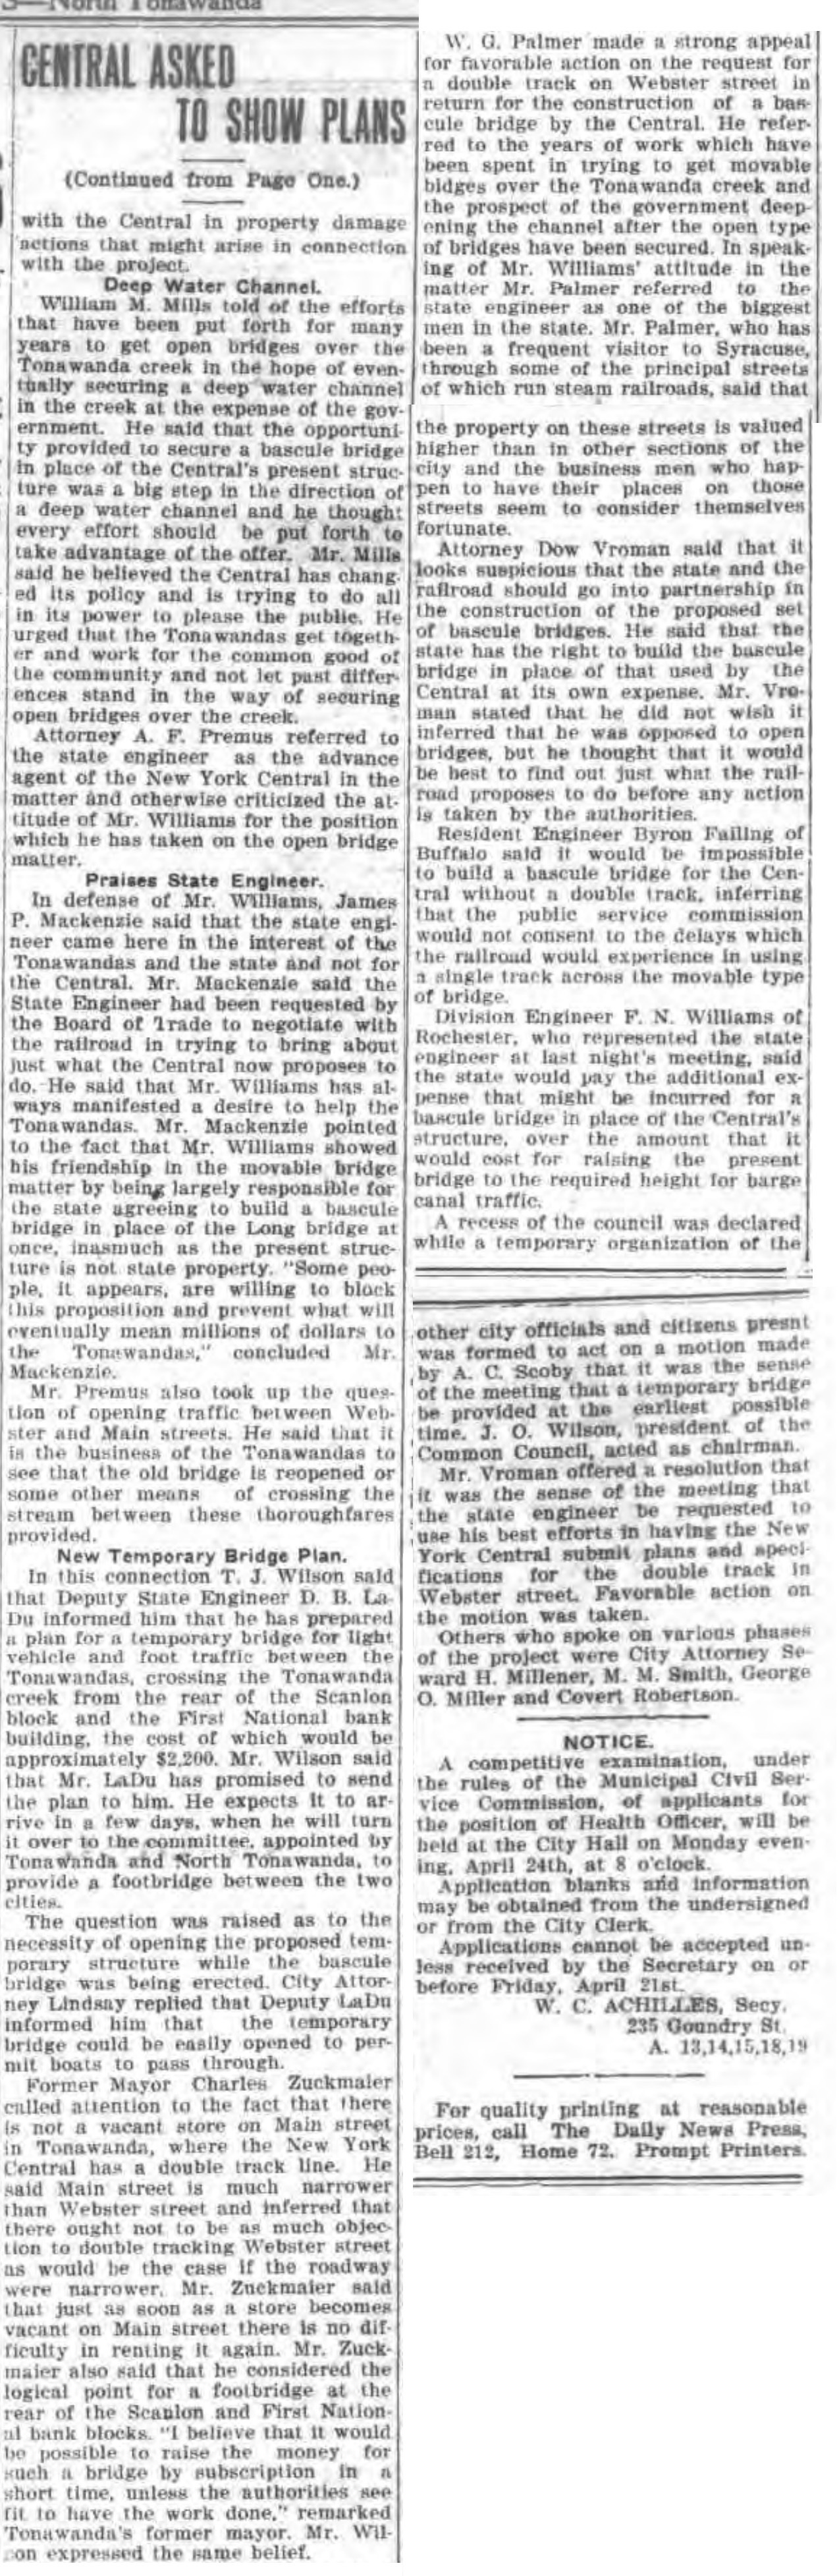 Central asked to show plans, article pt 2 pf 2 (Tonawanda News, 200630, 1918-04-19).jpg